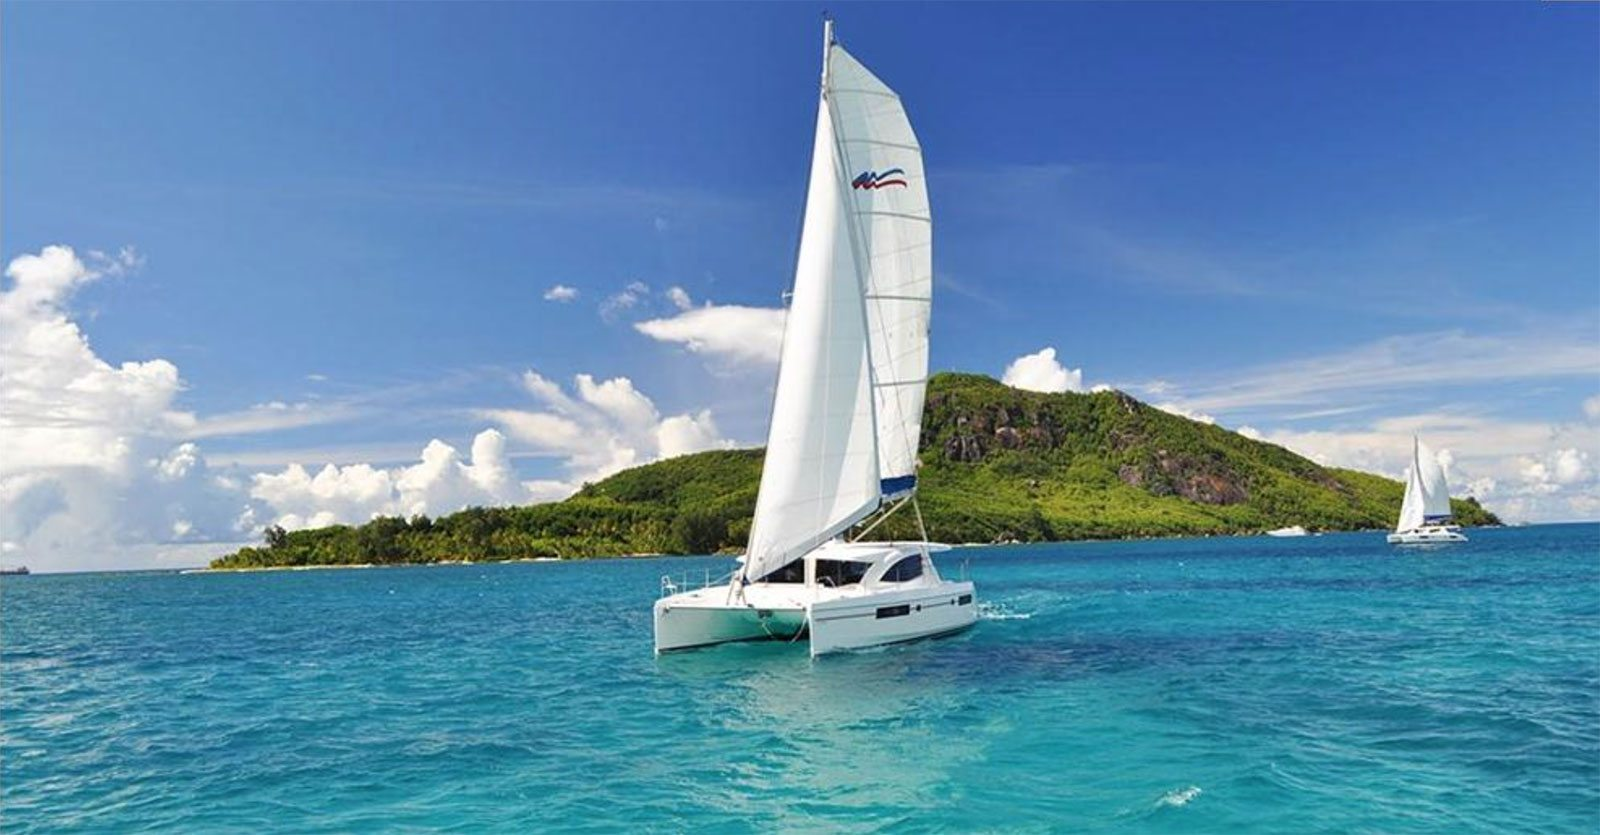 Caribtours announces partnership with the Moorings